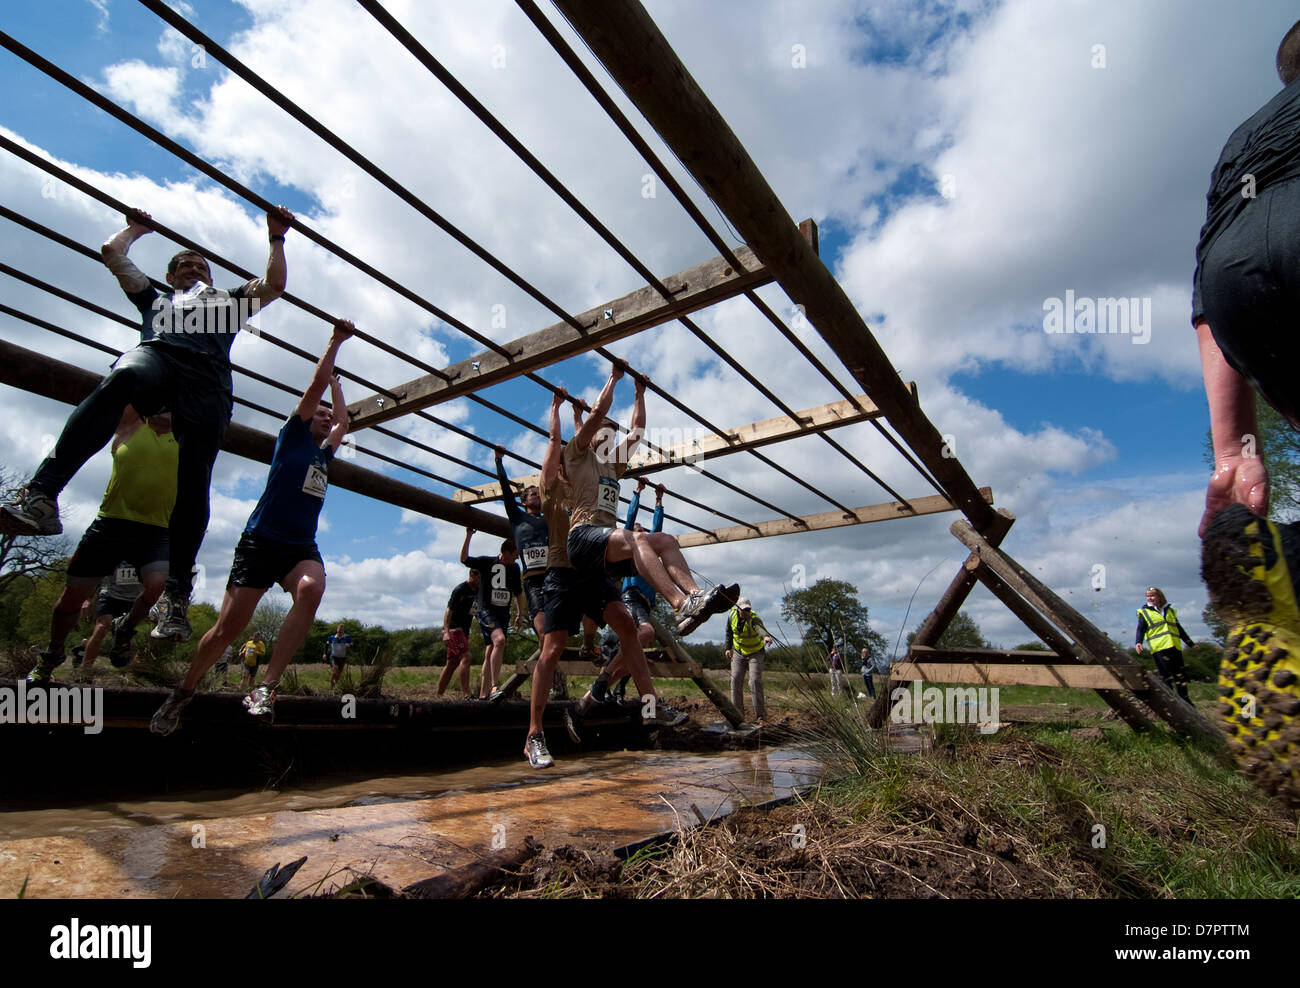 The Monkey Bars proved to be one of the most difficult obstacle during Lactic Rush 2013. - Stock Image